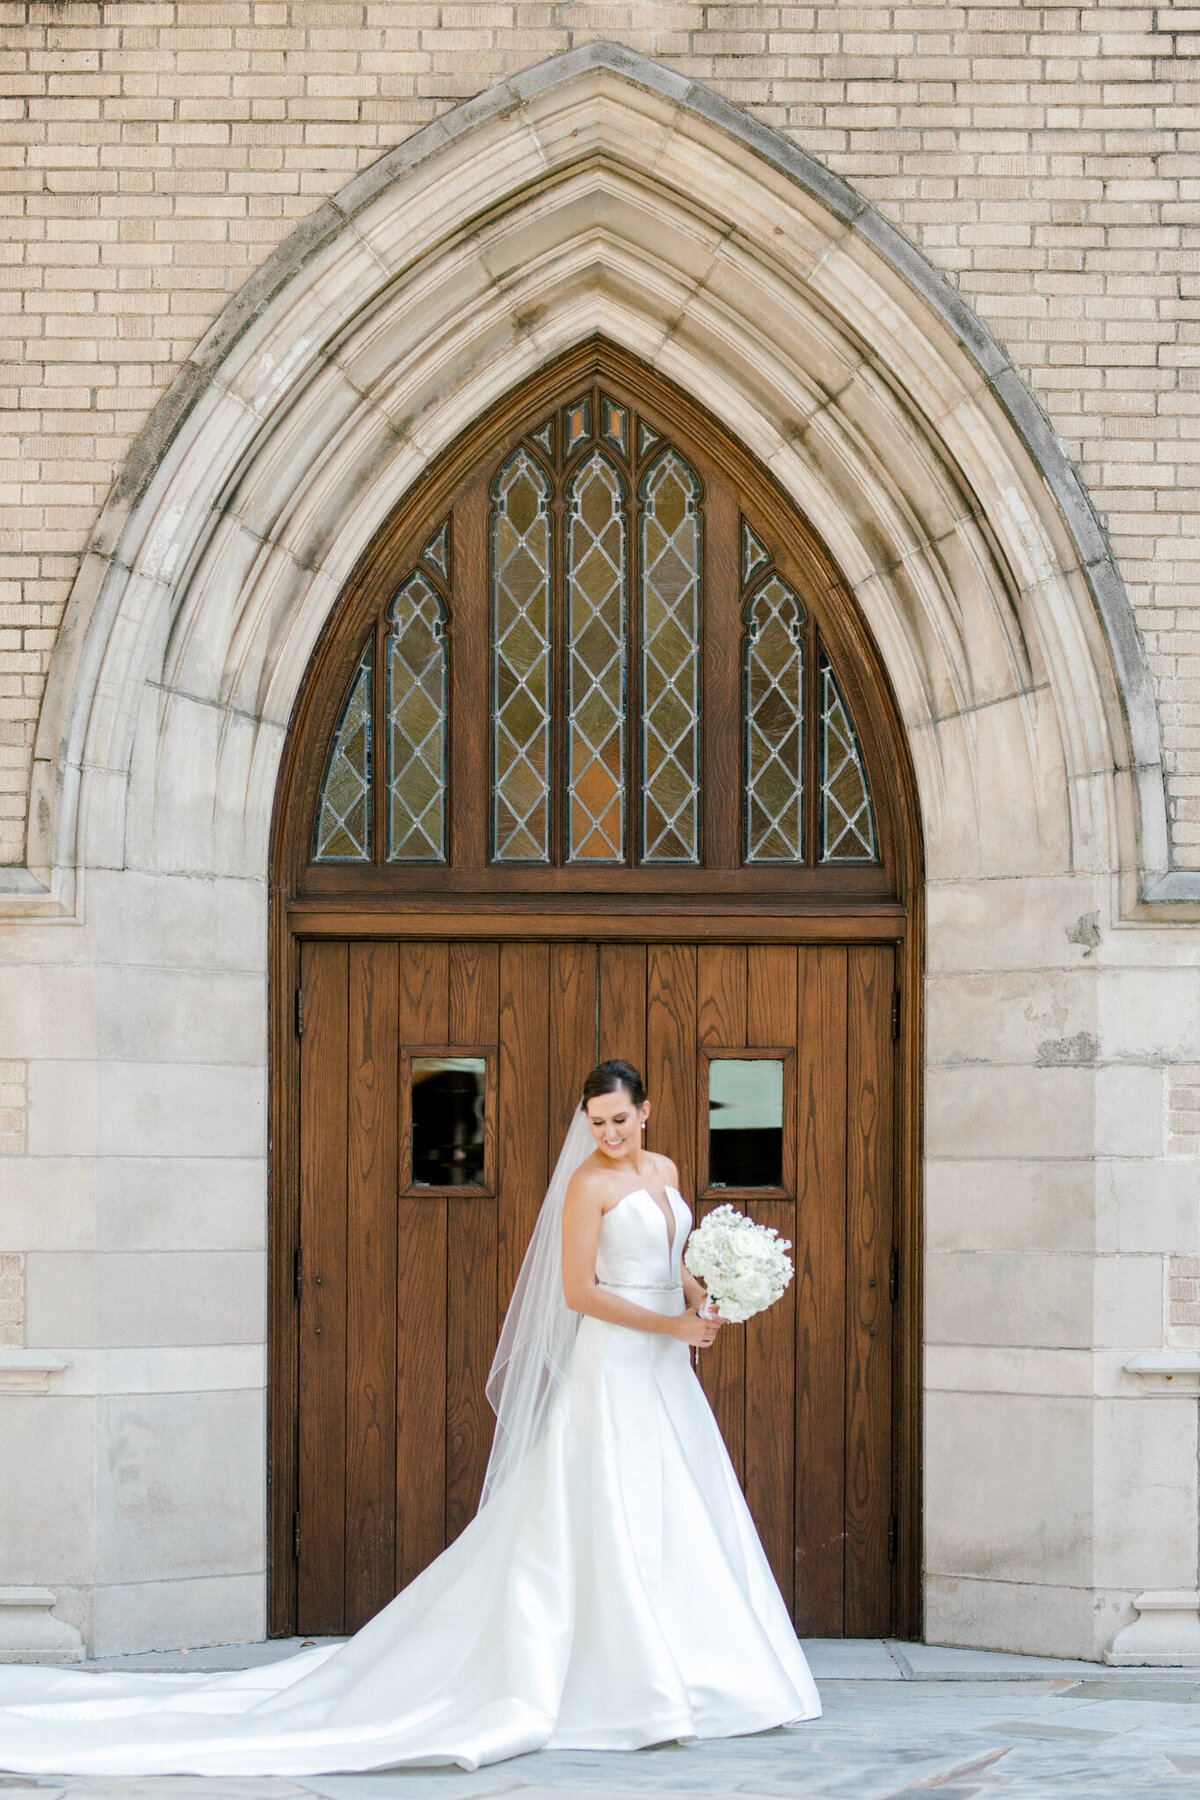 Wedding at the Crescent Court Hotel and Highland Park United Methodist Church in Dallas | Sami Kathryn Photography | DFW Wedding Photographer-132